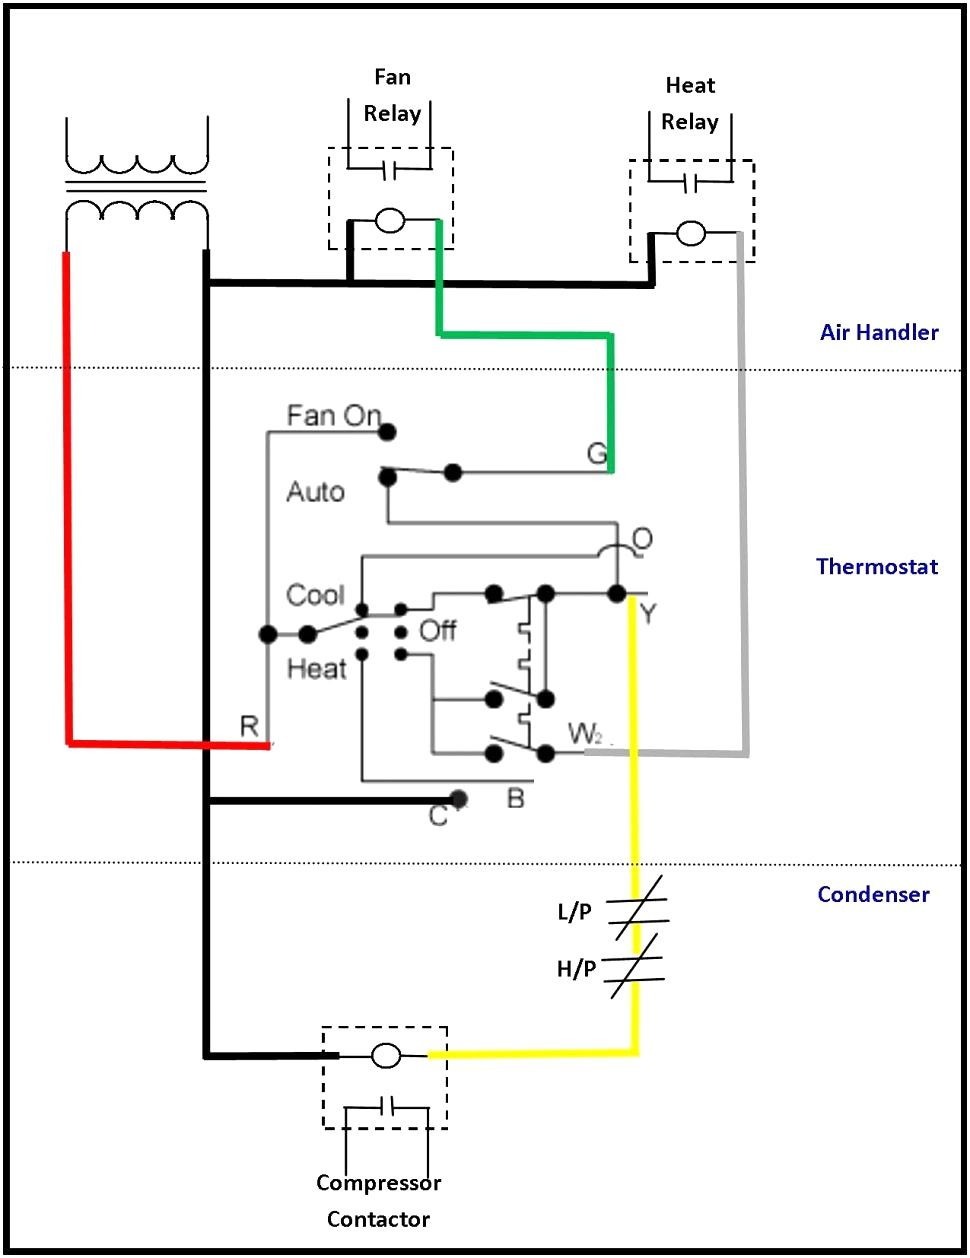 5 Pin Bosch Relay Wiring Diagram - fitfathers.me | Electrical circuit  diagram, Thermostat wiring, Basic electrical wiringPinterest